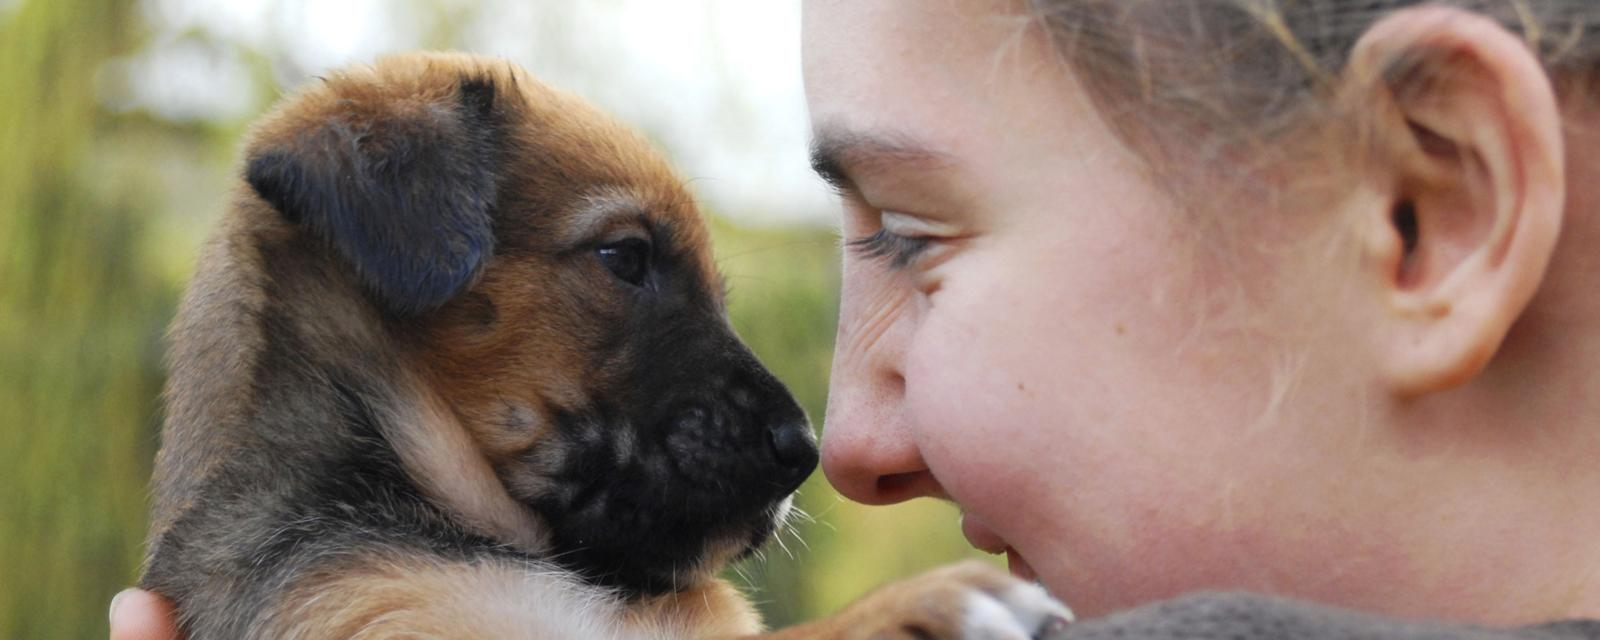 Pet rescue fraud: More common than you may think - BBC Worklife